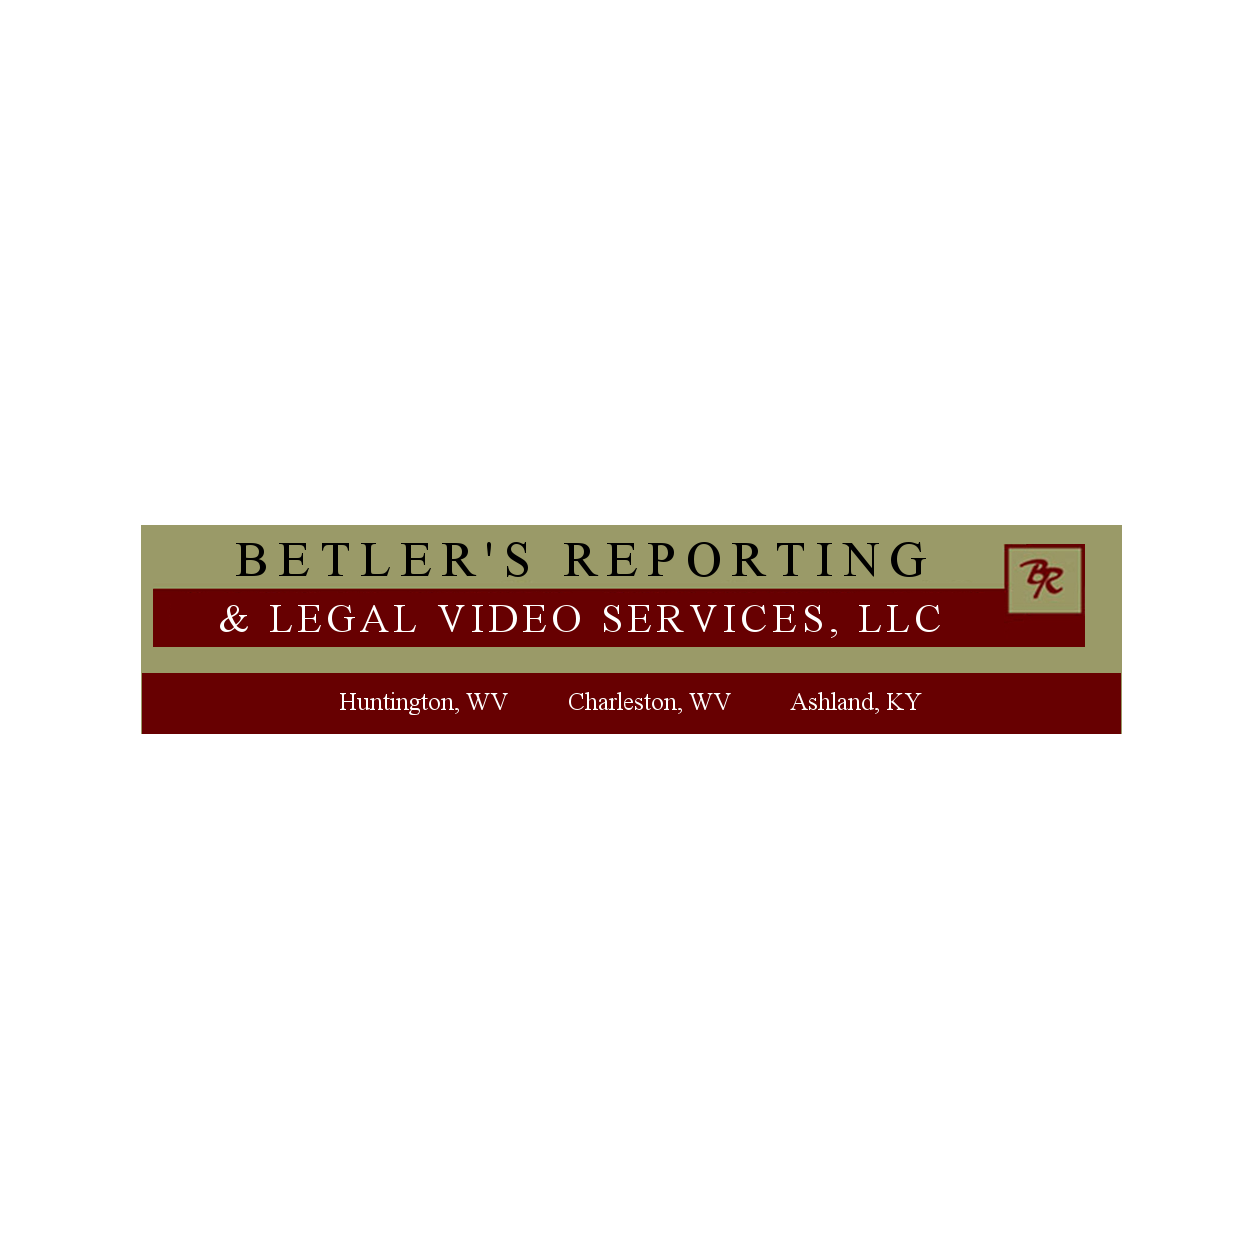 Betler's Reporting & Legal Video Services